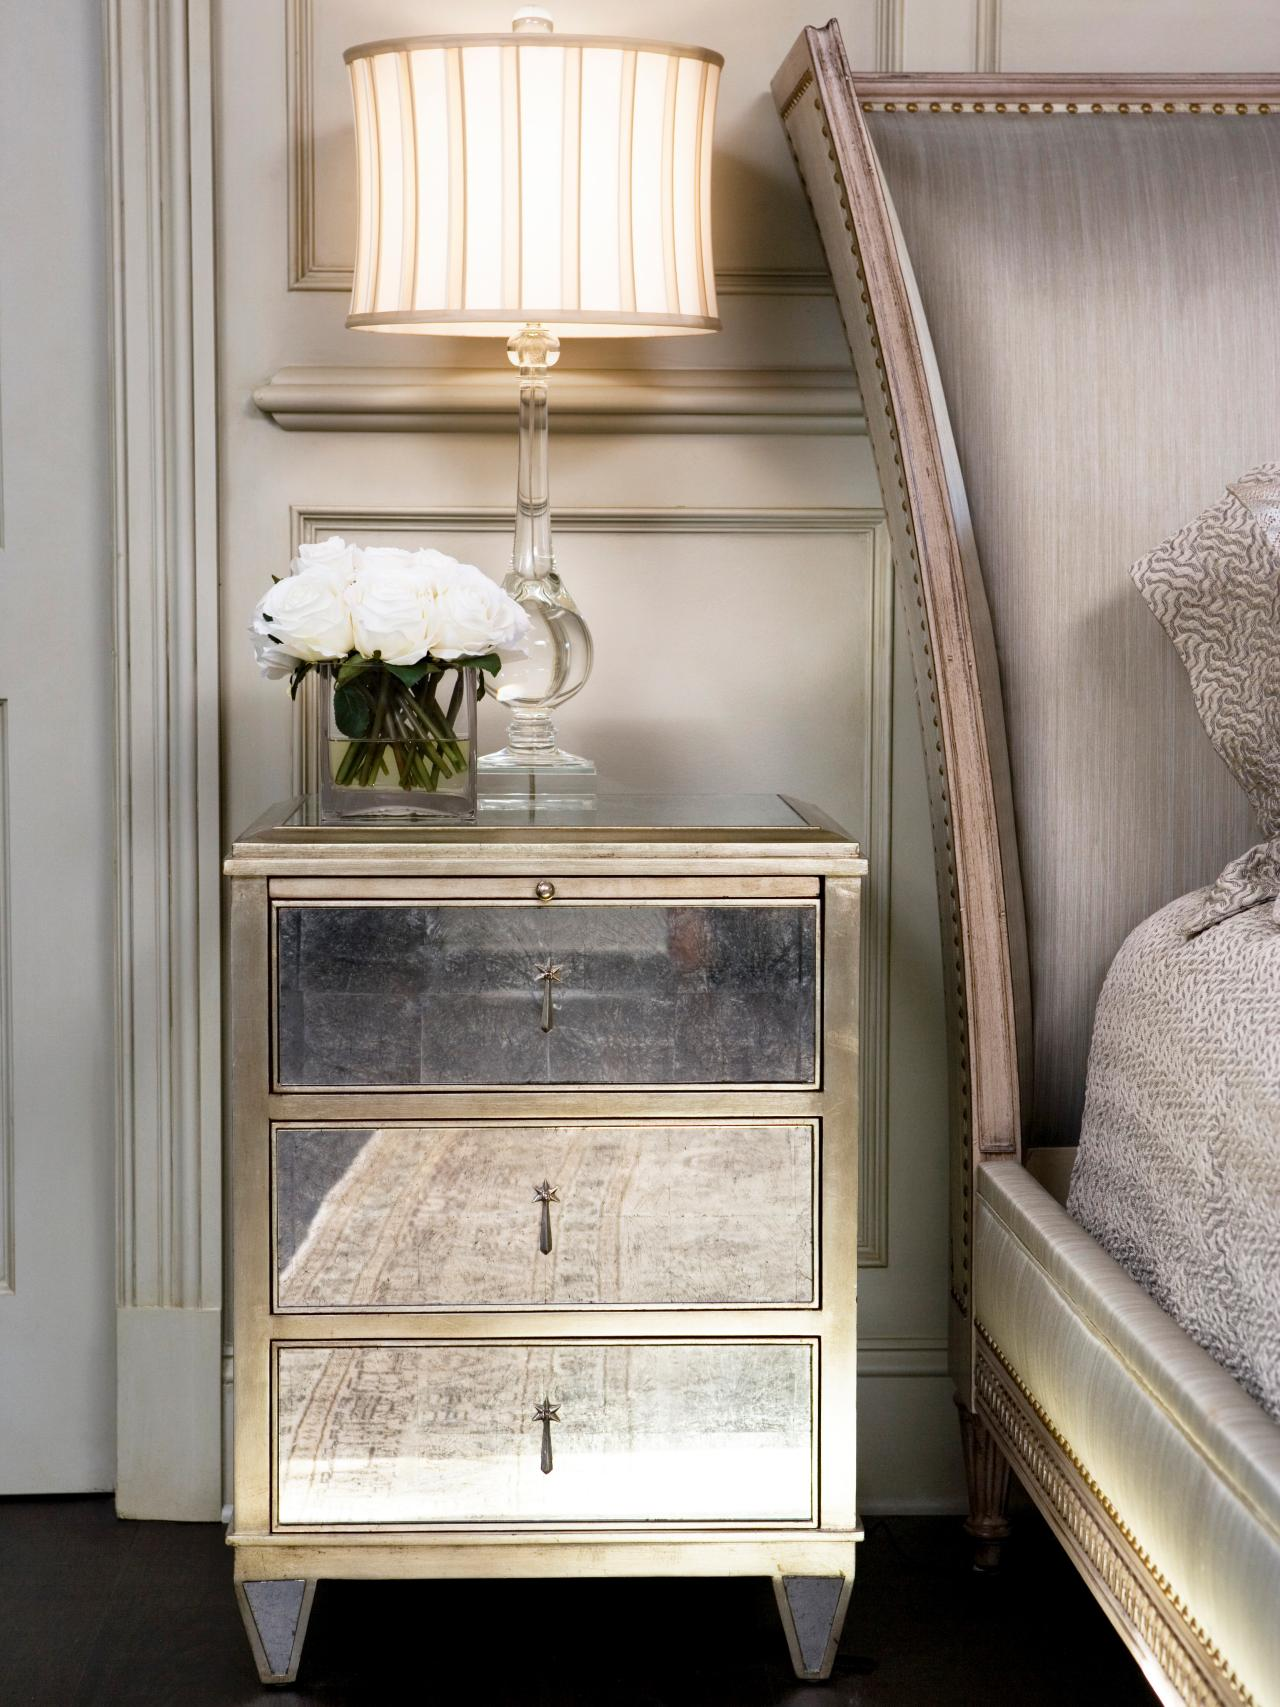 the fantastic free nightstand mirrored ideas hotxpress bedroom best for your design with drawer and table lamp decor black target all mid century furniture accent storage cabinet